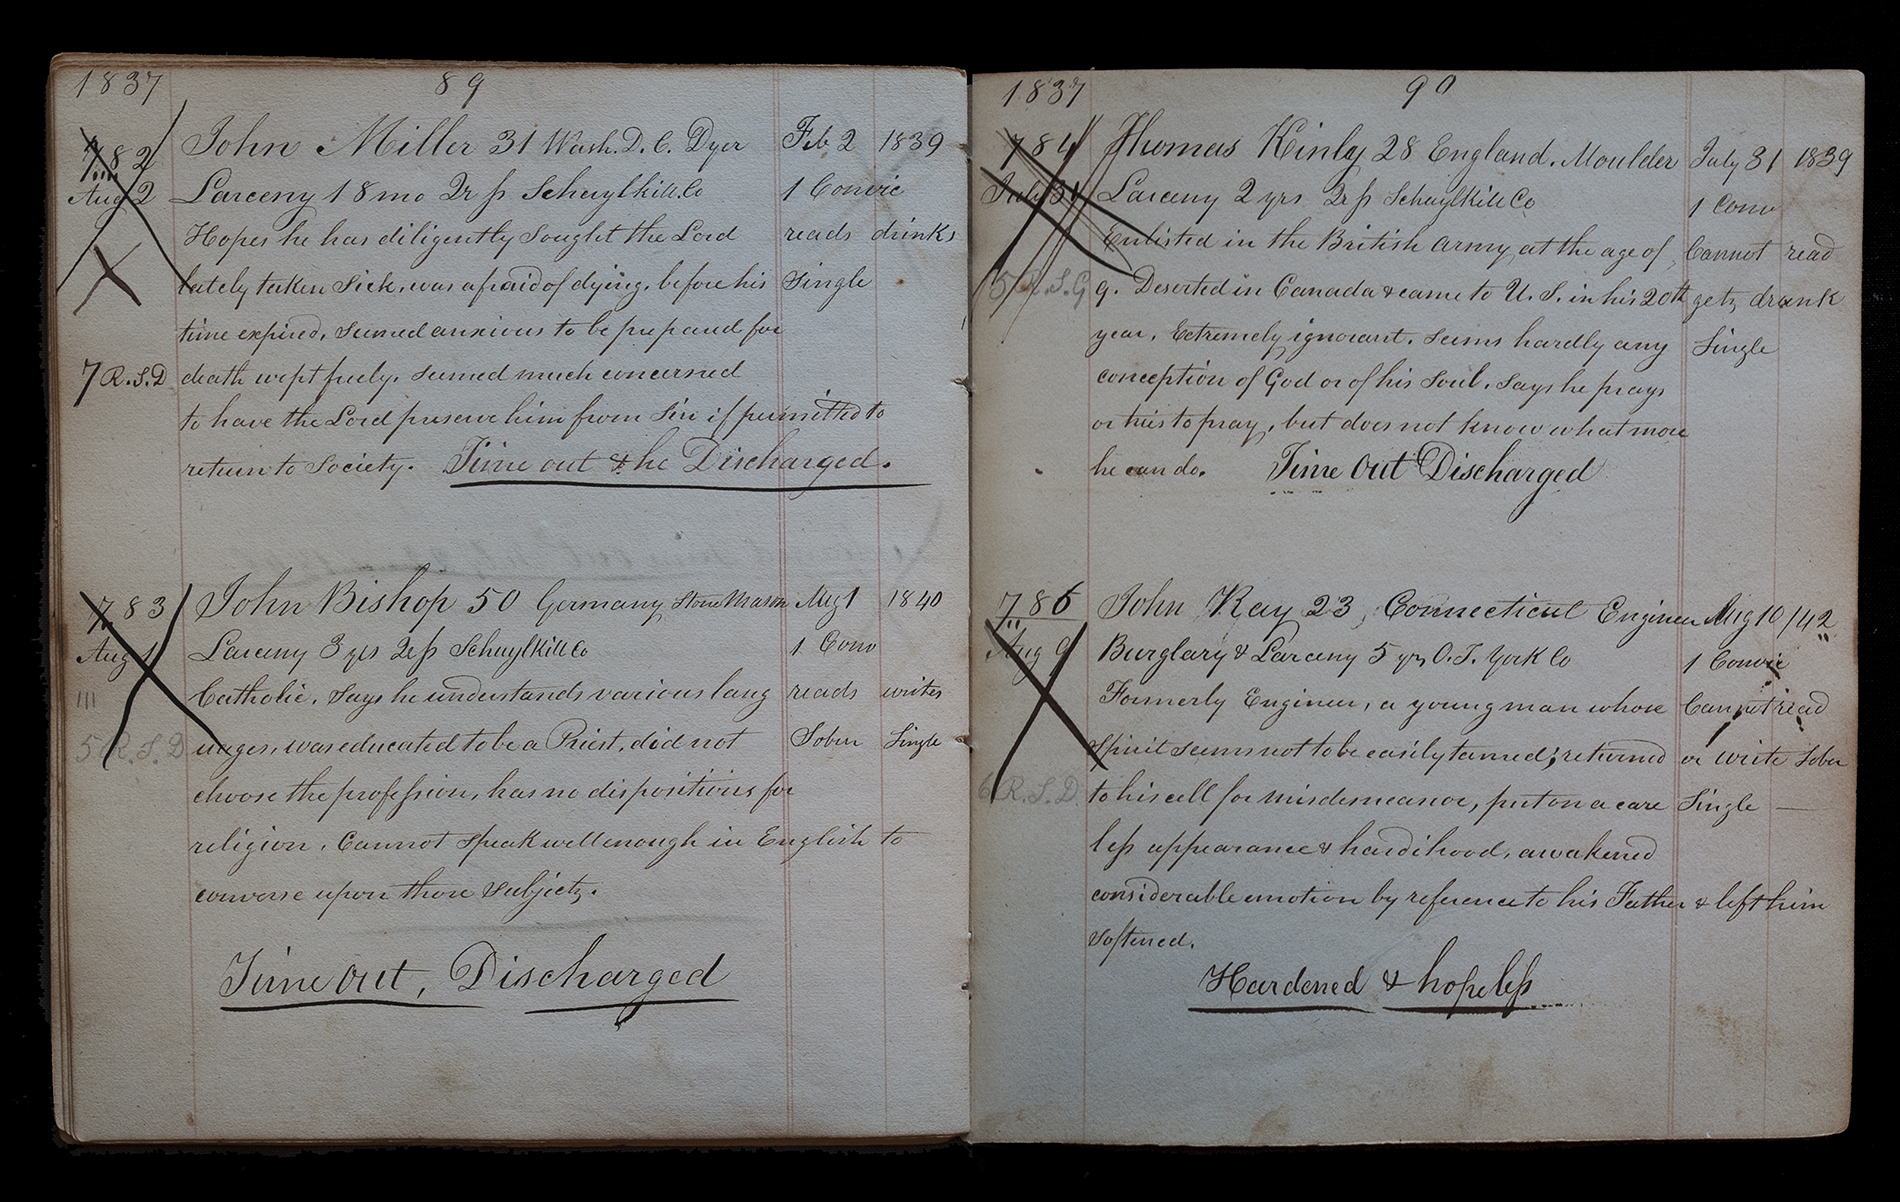 Warden's Logbook 1837, Page 89-90